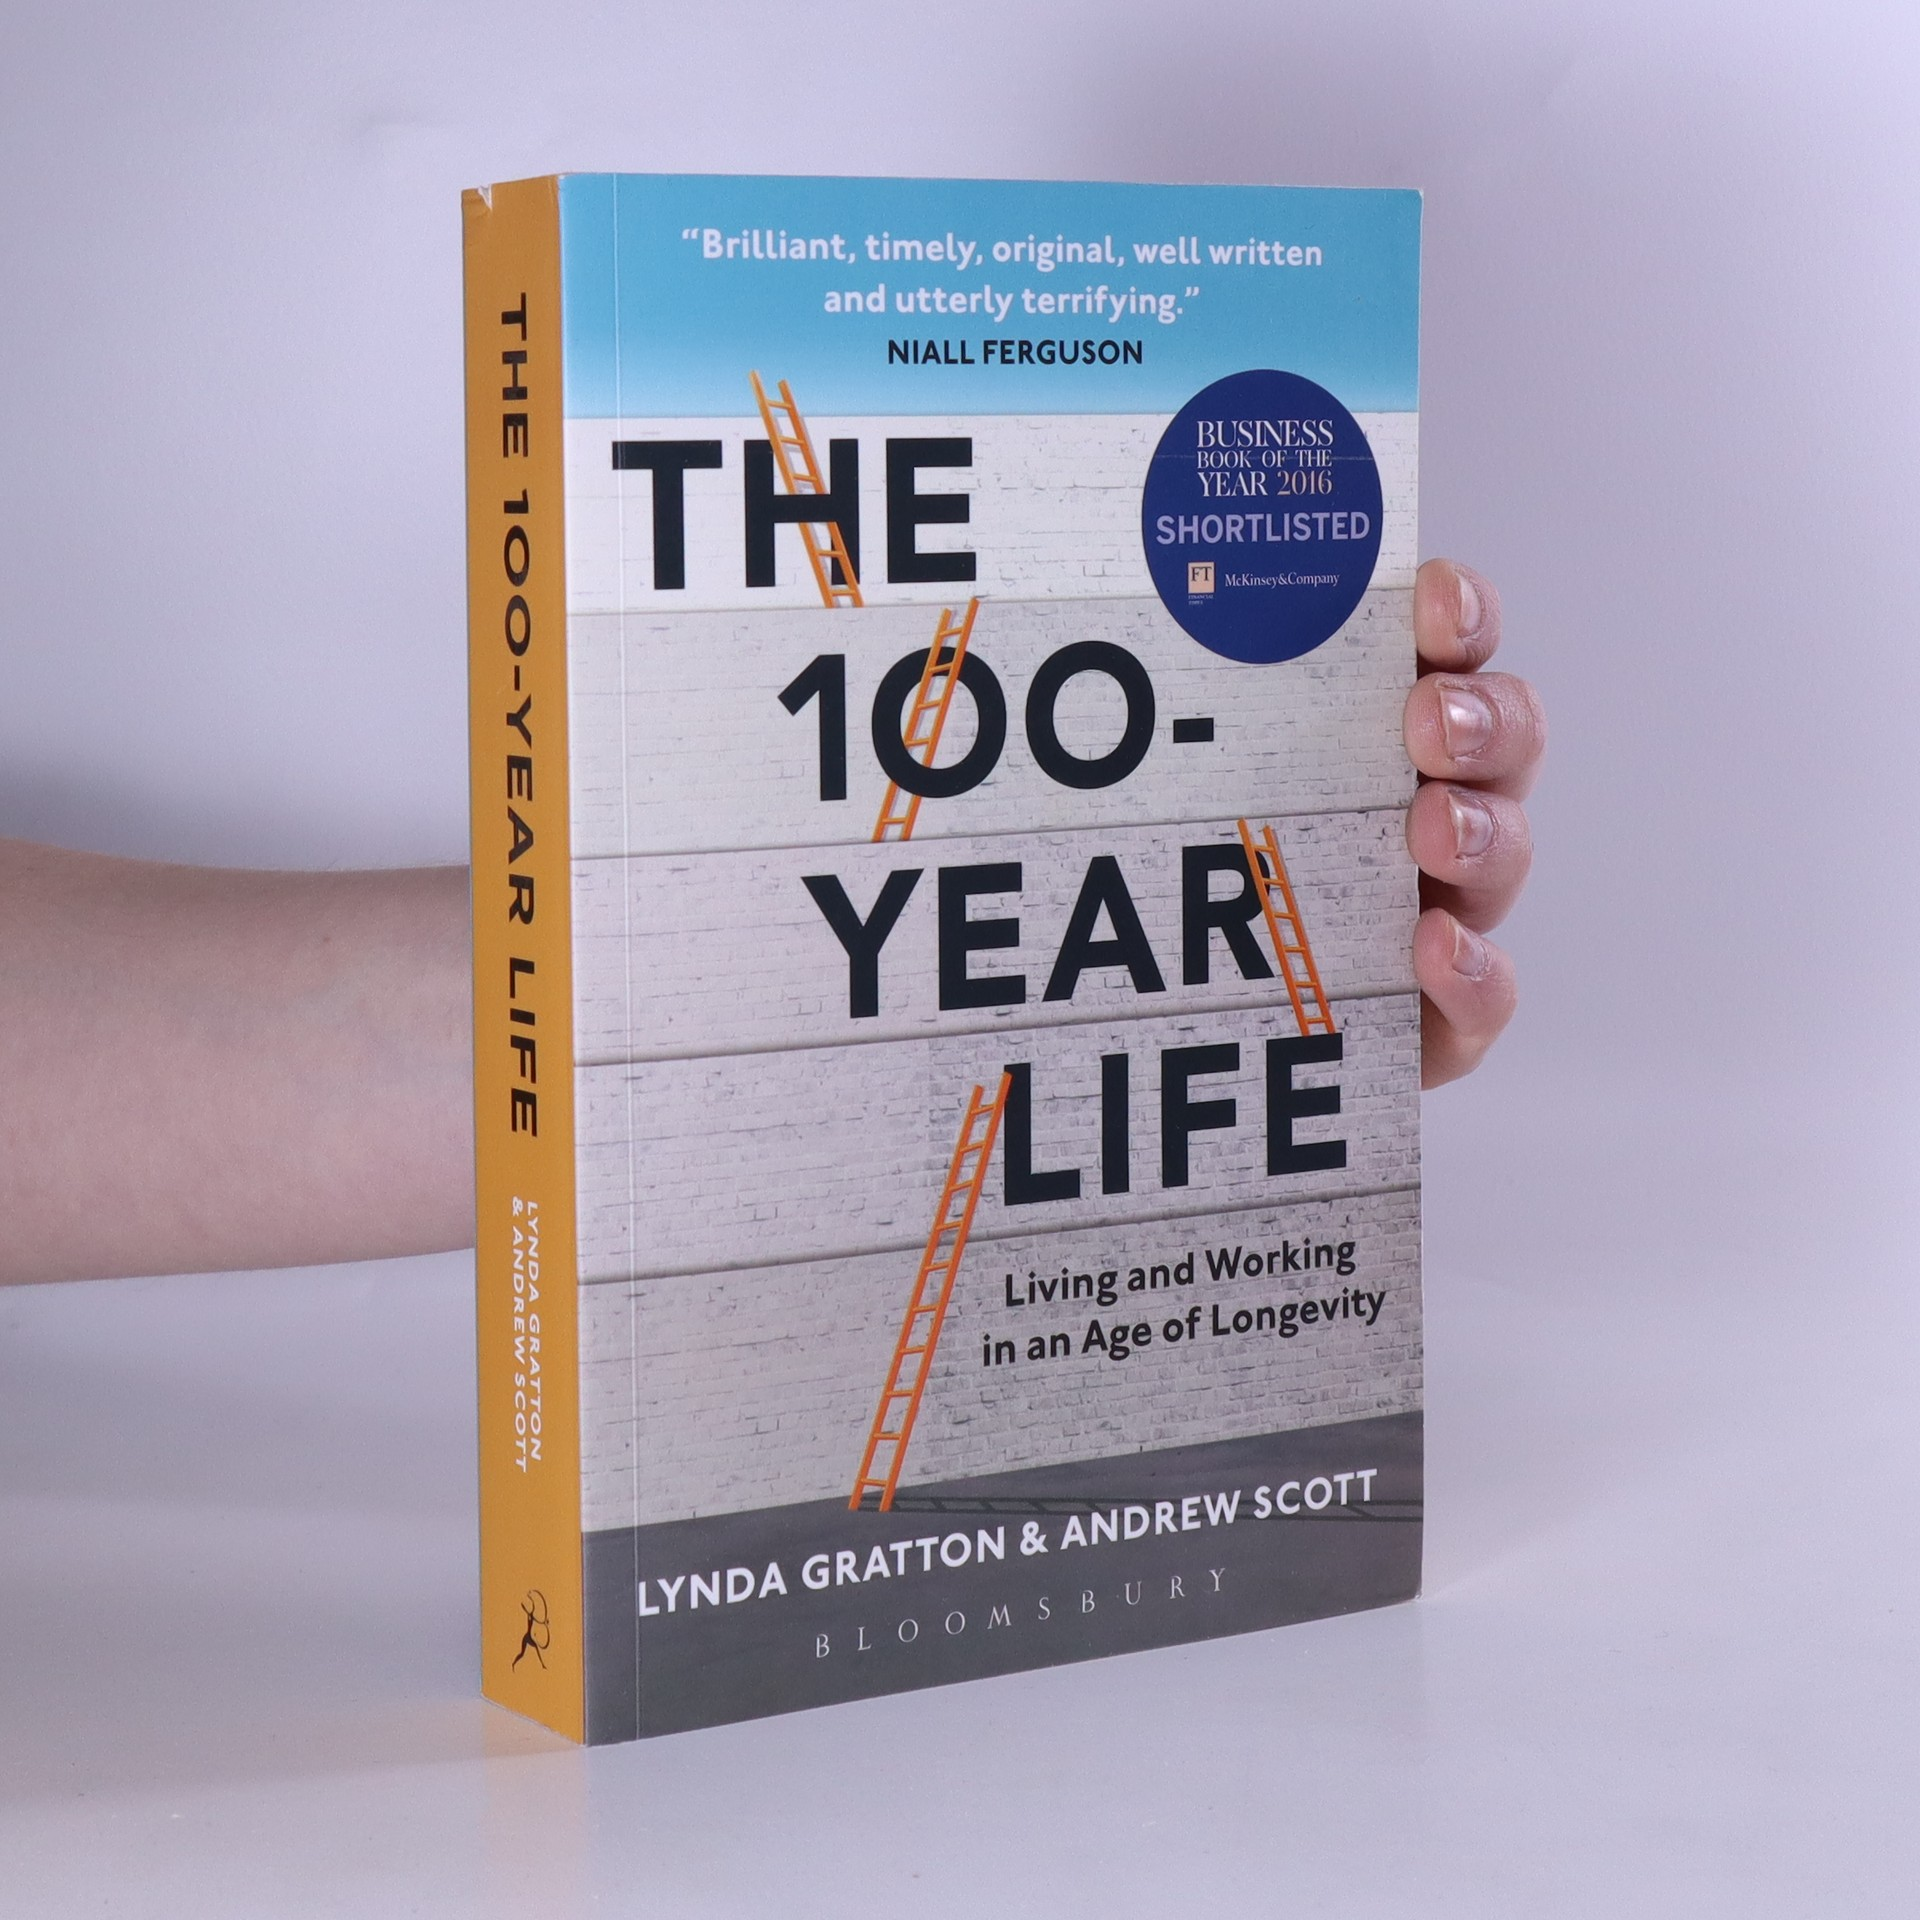 antikvární kniha The 100-year life. Living and working in an age of longevity, 2017